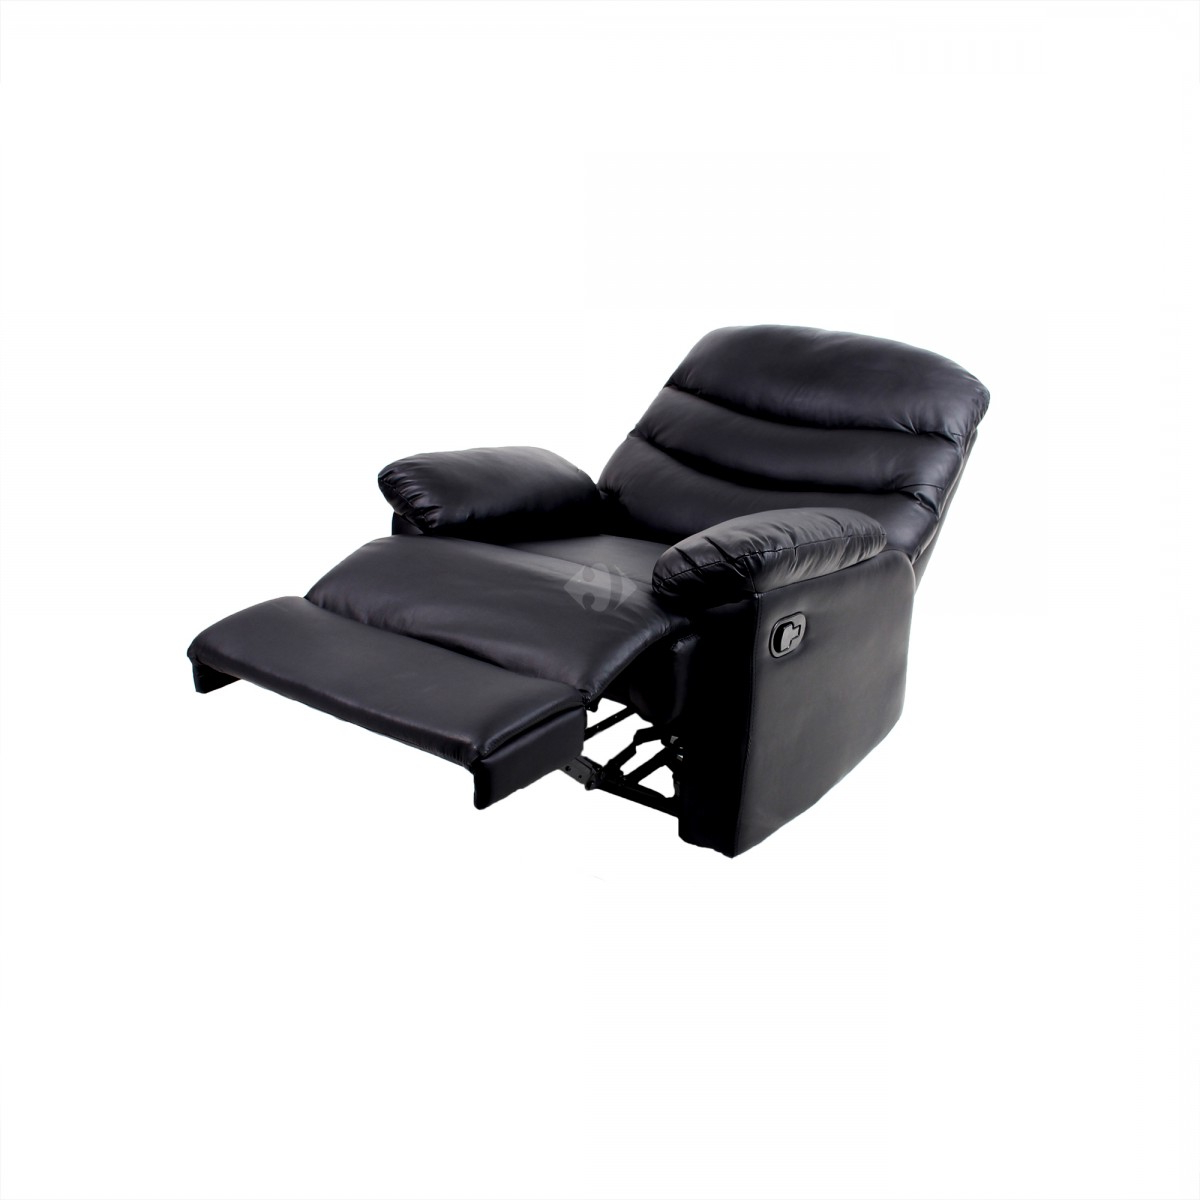 Sofa Reclinable Argentina Carrefour Sillones T8dj Sillà N Reclinable Relax Negro Carrefour